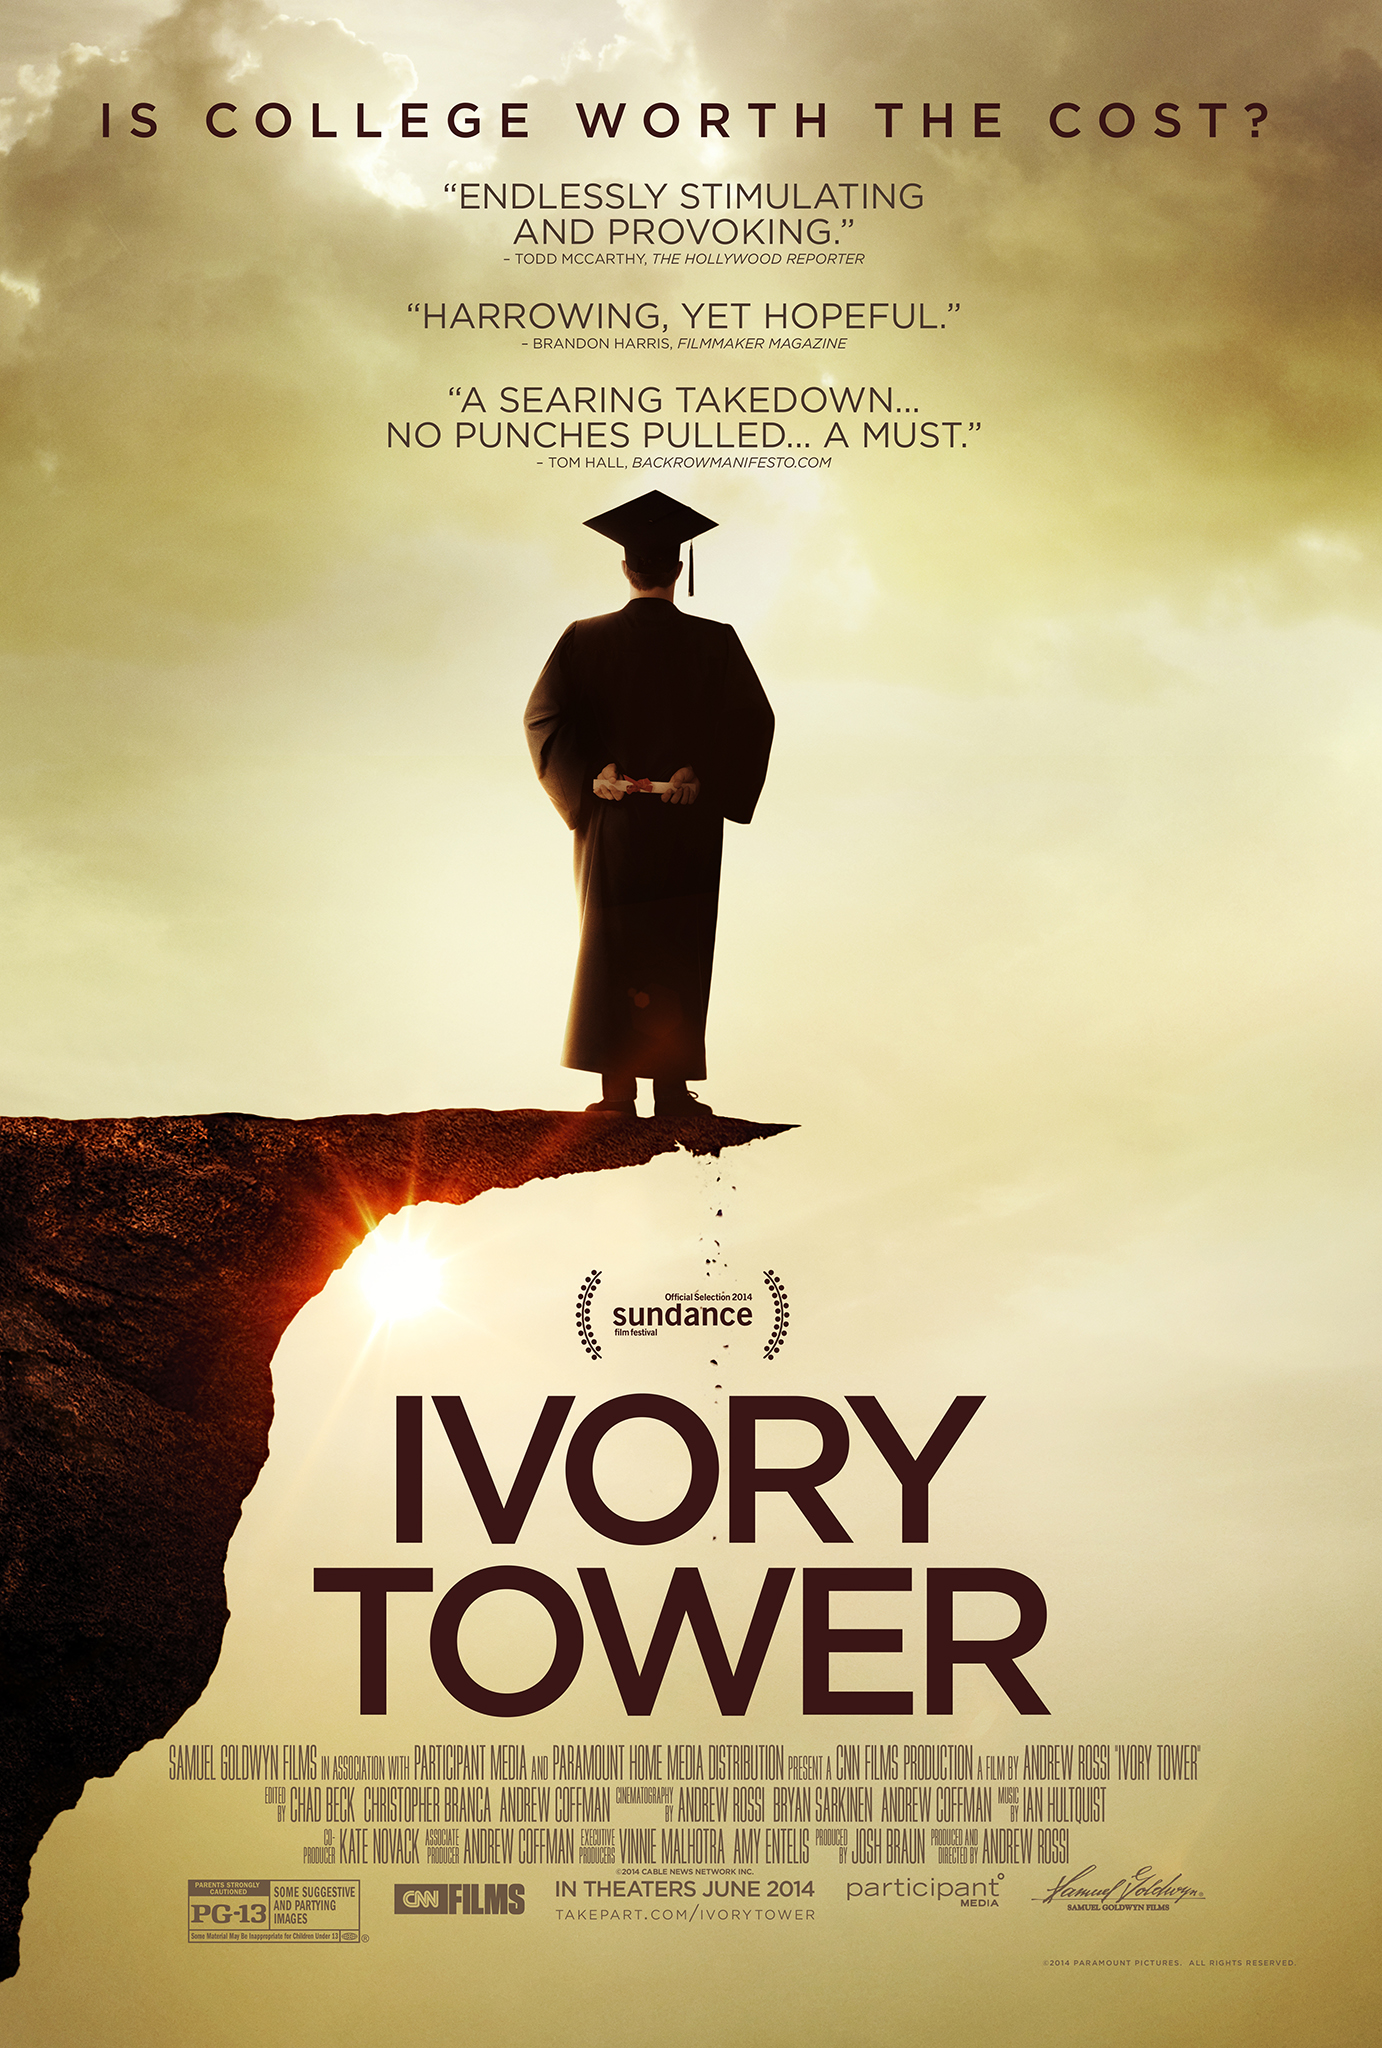 !Ivory_Tower_poster.jpg